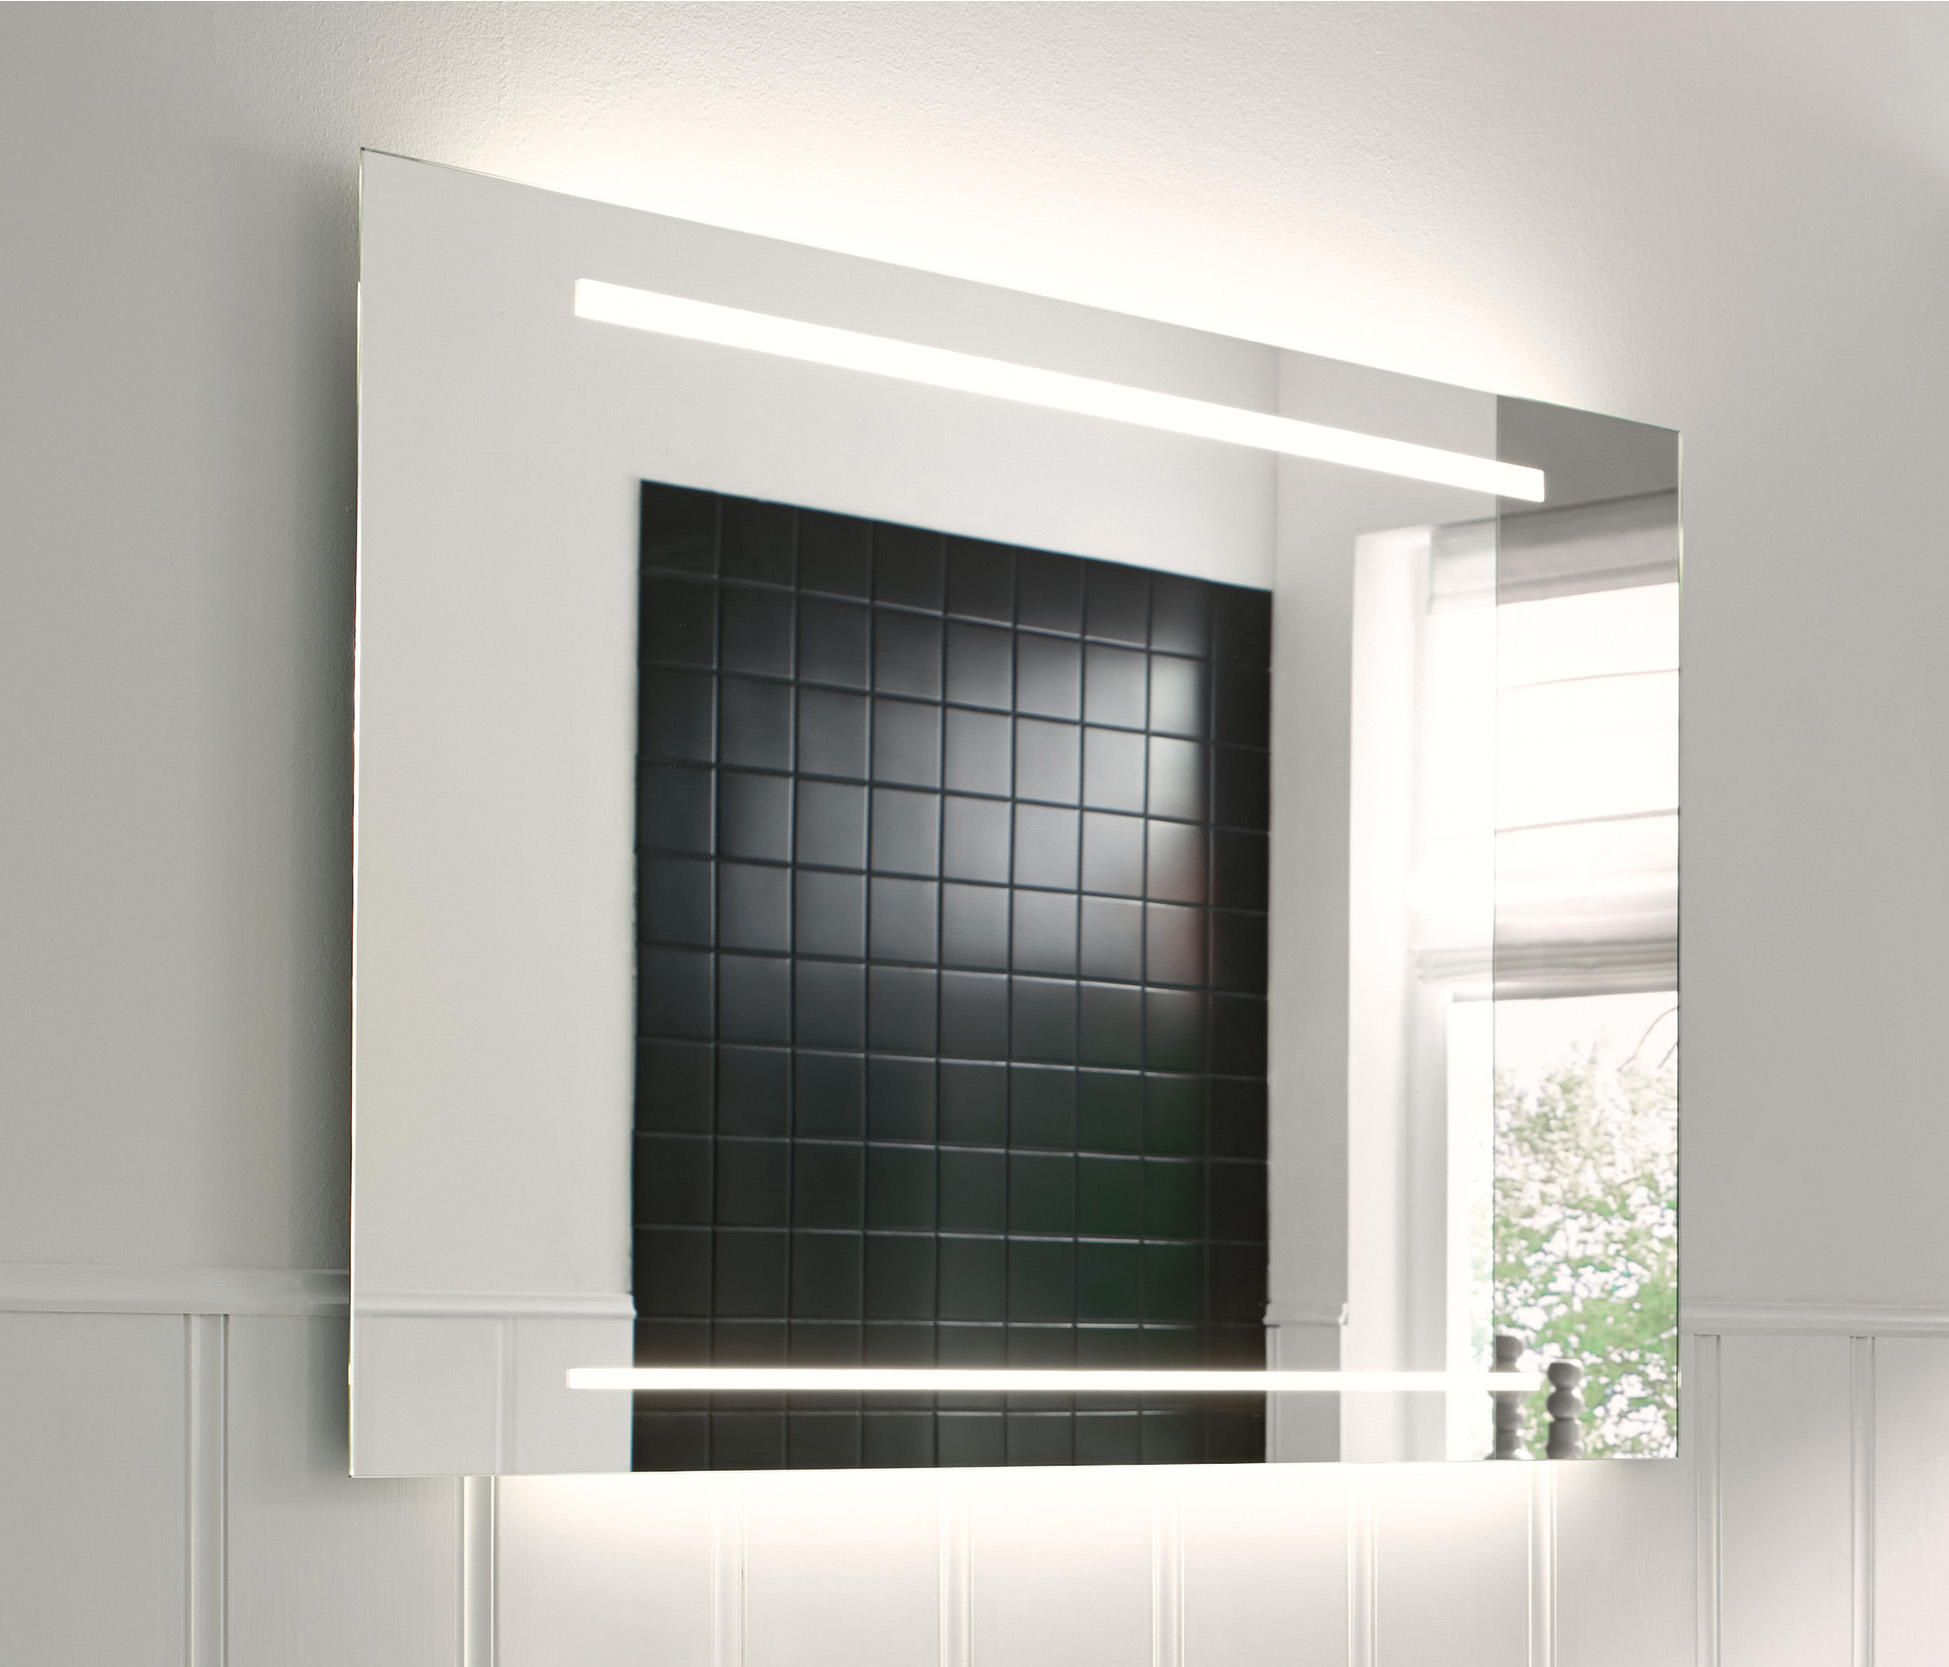 Essento miroir avec clairage led horizontal miroirs for Miroir horizontal